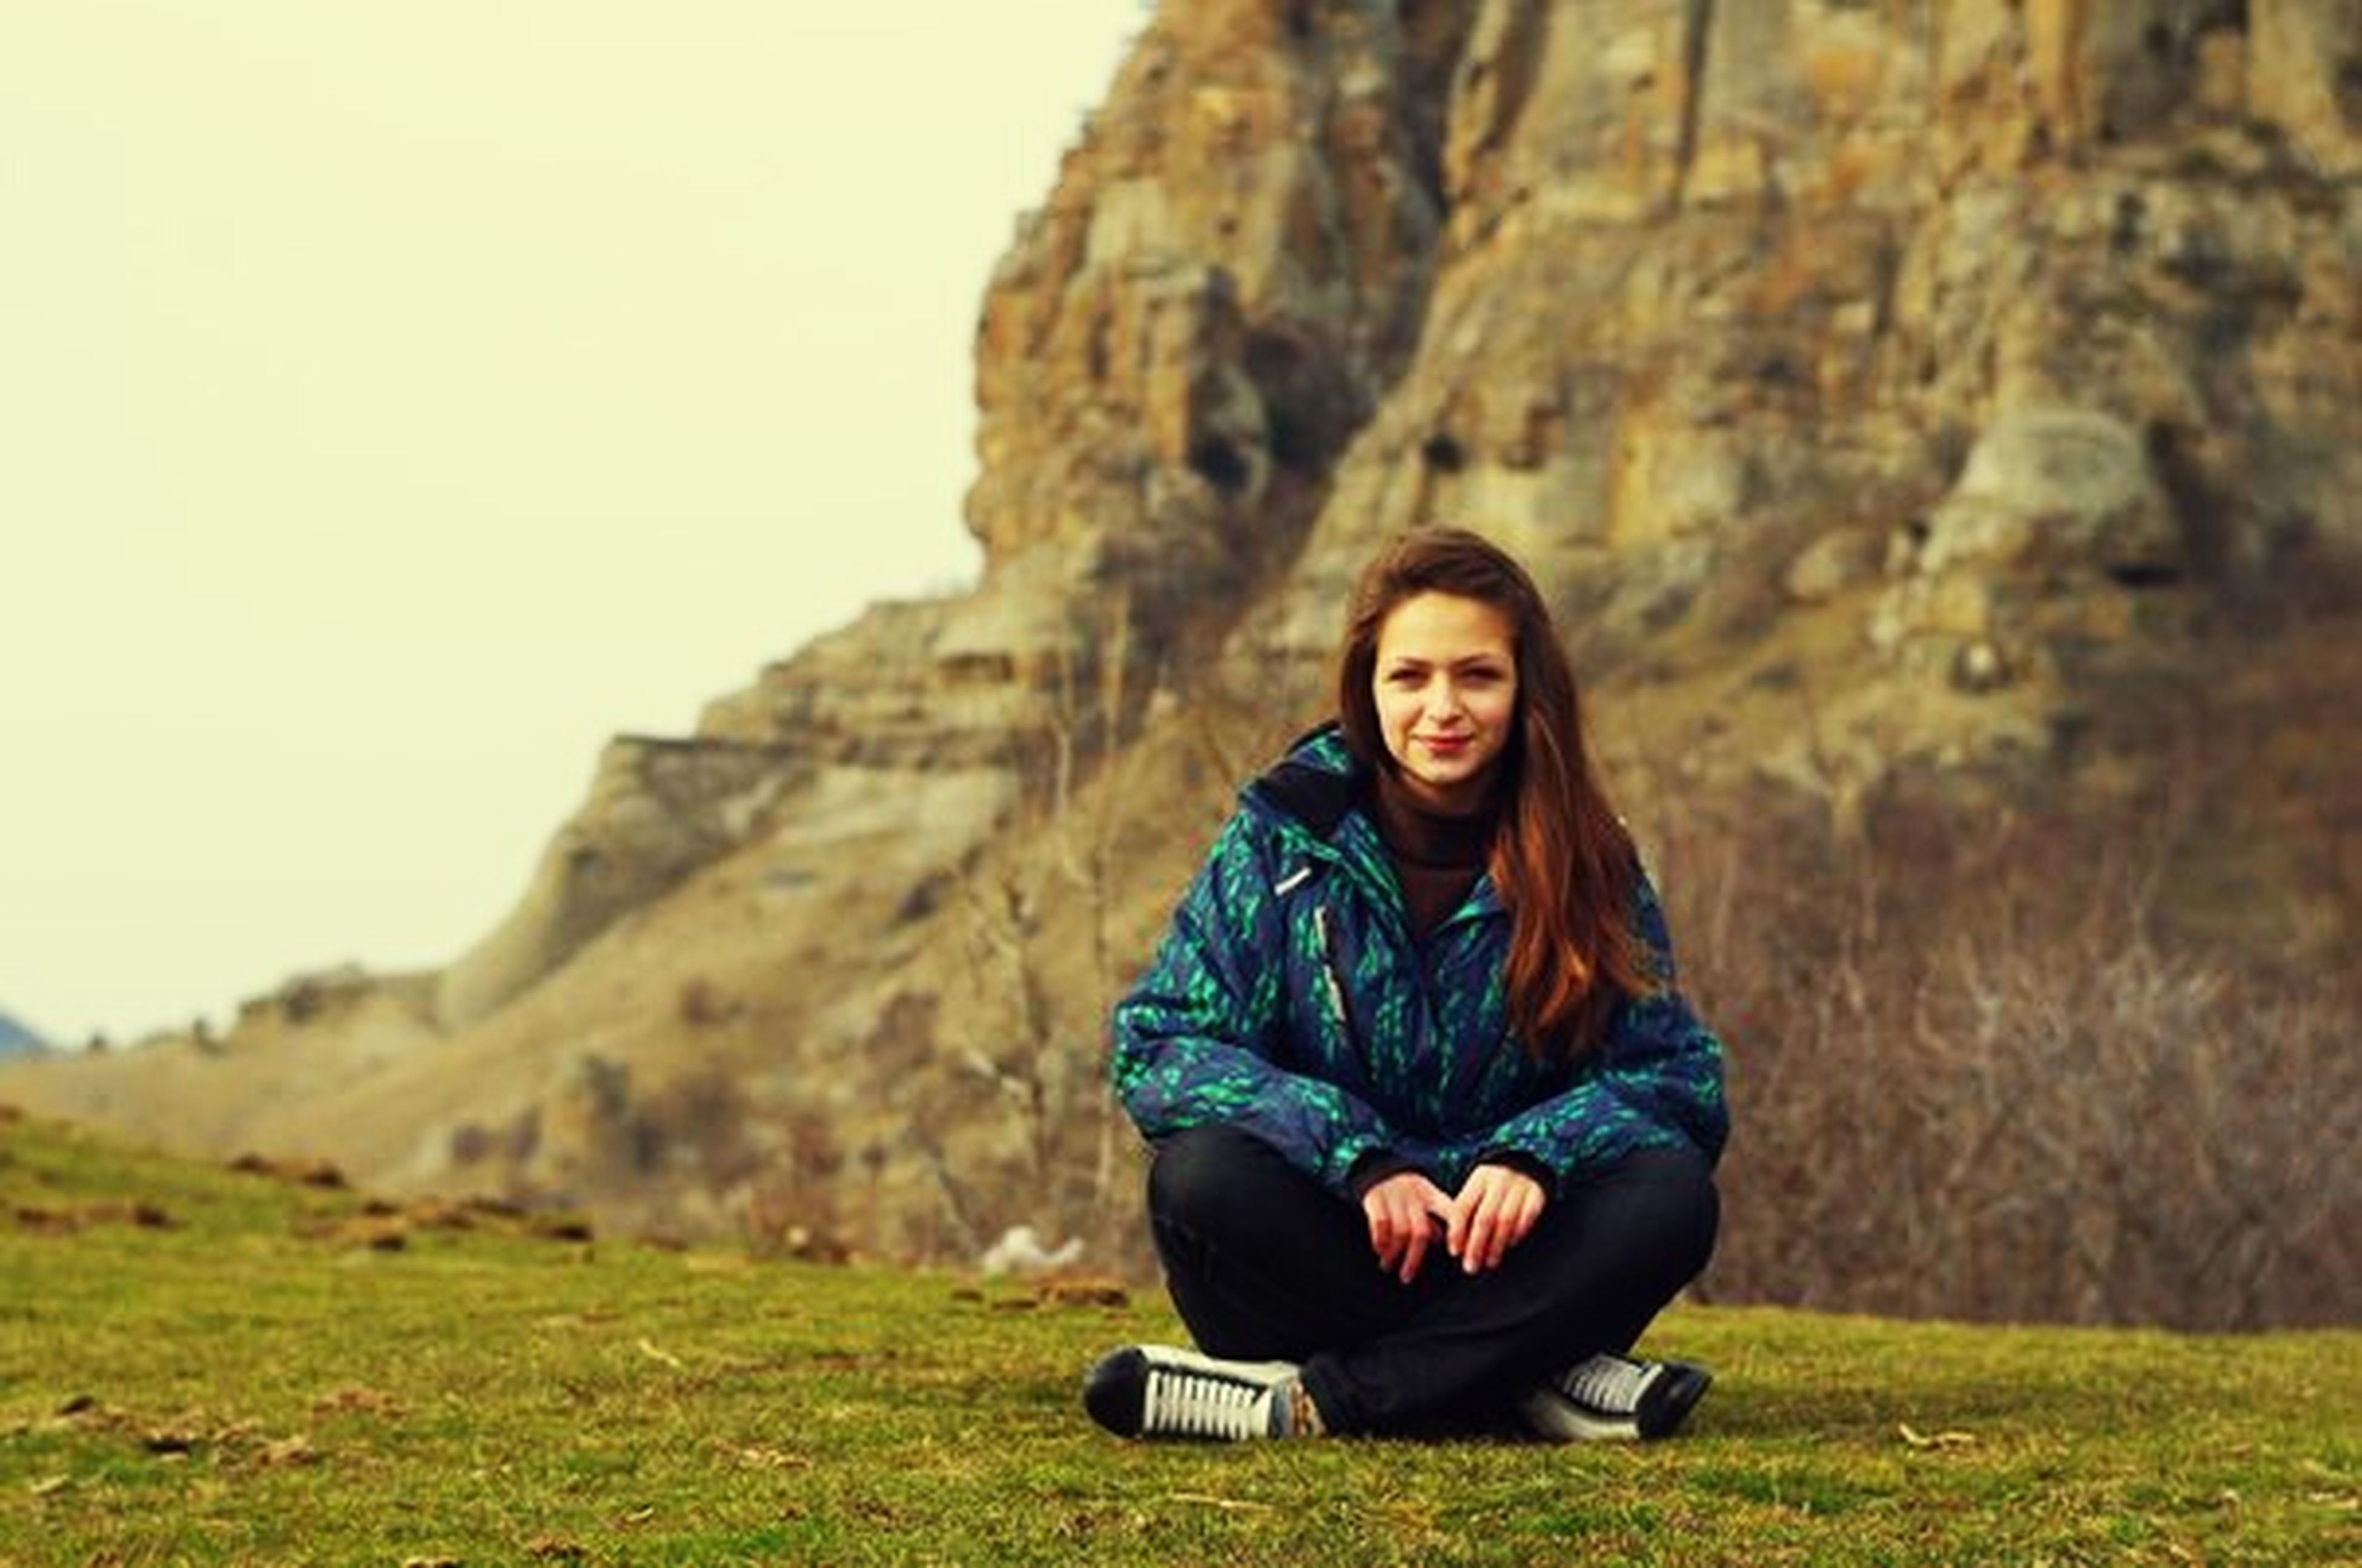 lifestyles, casual clothing, leisure activity, young adult, person, looking at camera, smiling, portrait, mountain, young women, grass, sitting, front view, full length, landscape, three quarter length